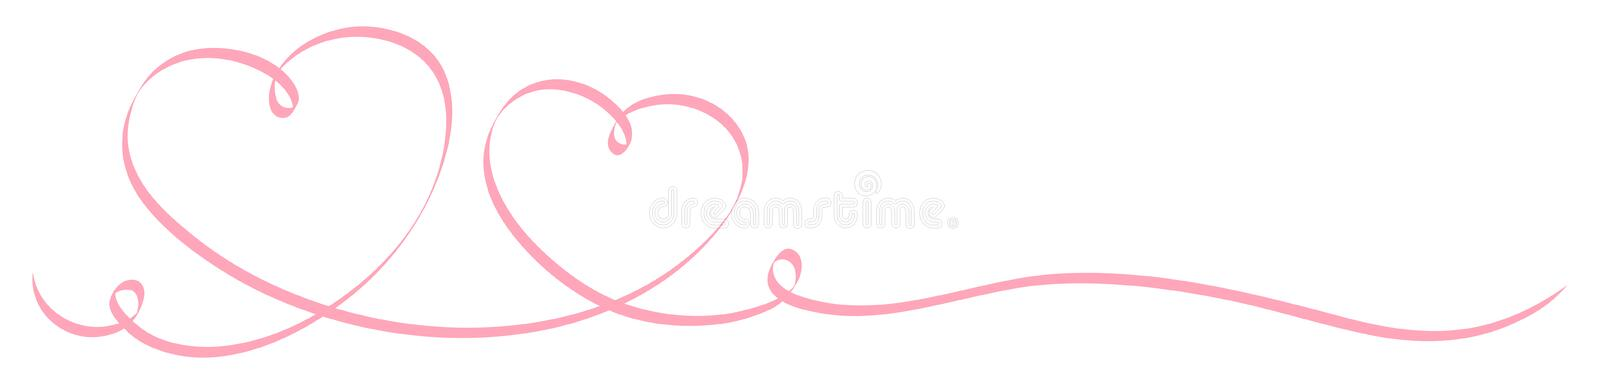 Horizontal Two Pink Calligraphy Hearts Big And Little Ribbon royalty free illustration